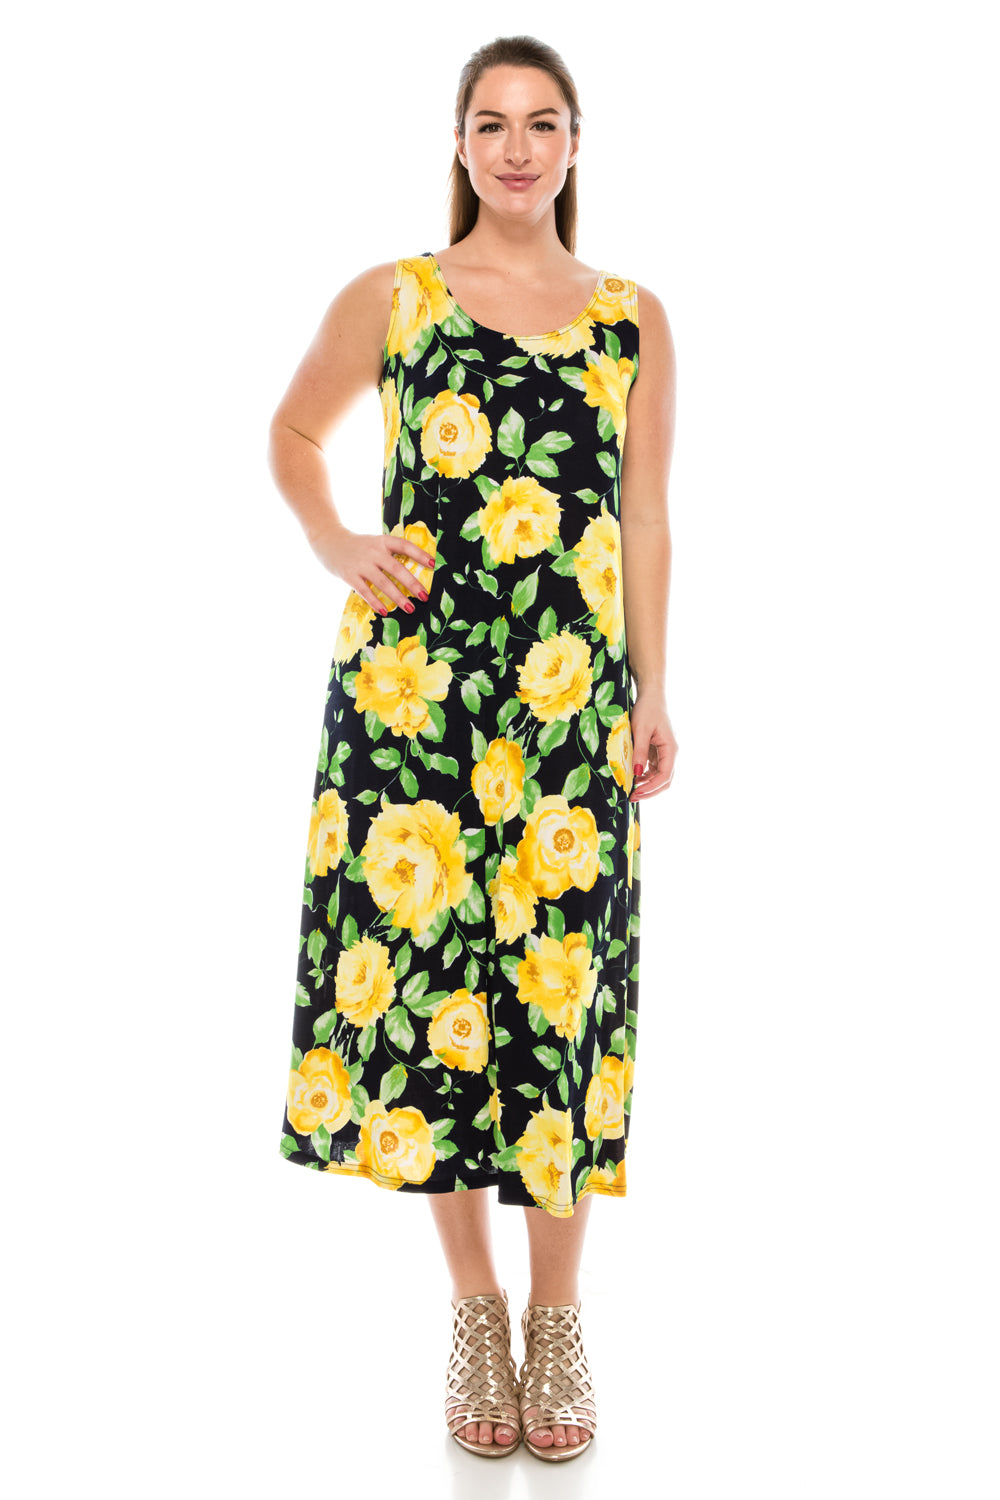 Jostar Women's Stretchy Long Tank Dress Print, 700BN-TP-W020 - Jostar Online